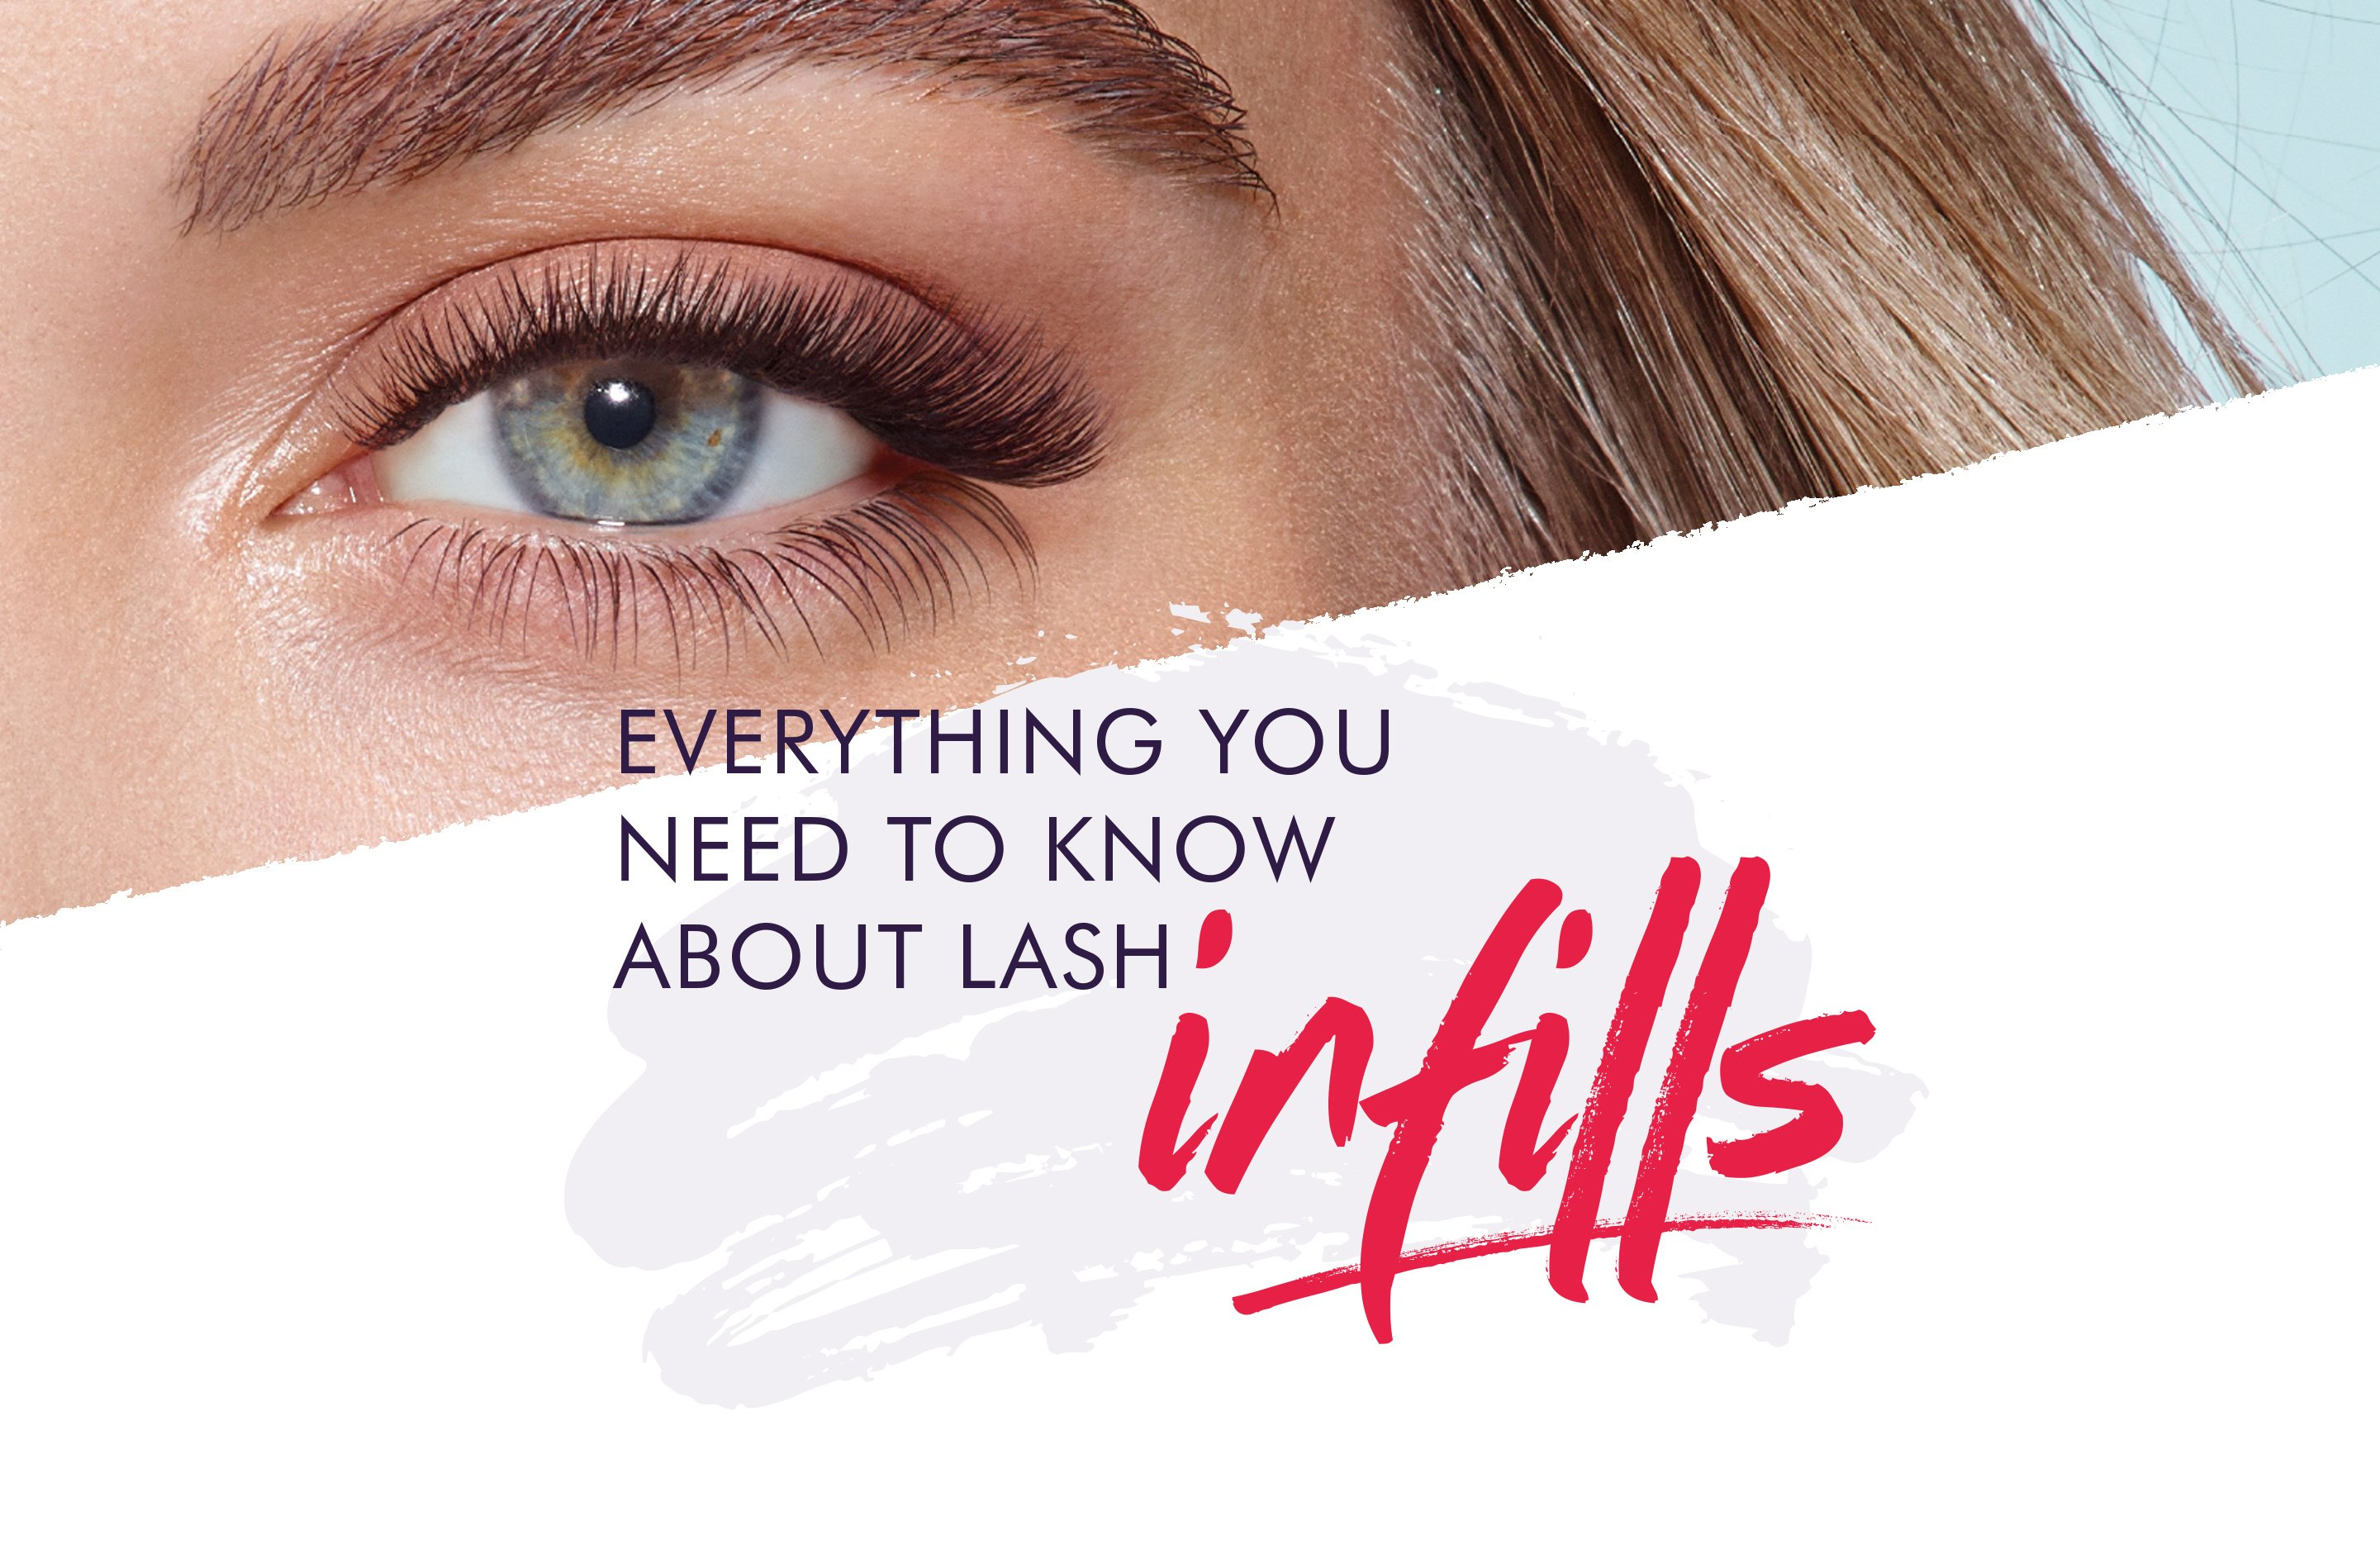 6bdea49e687 Everything you need to know about lash infills - Nouveau Lashes